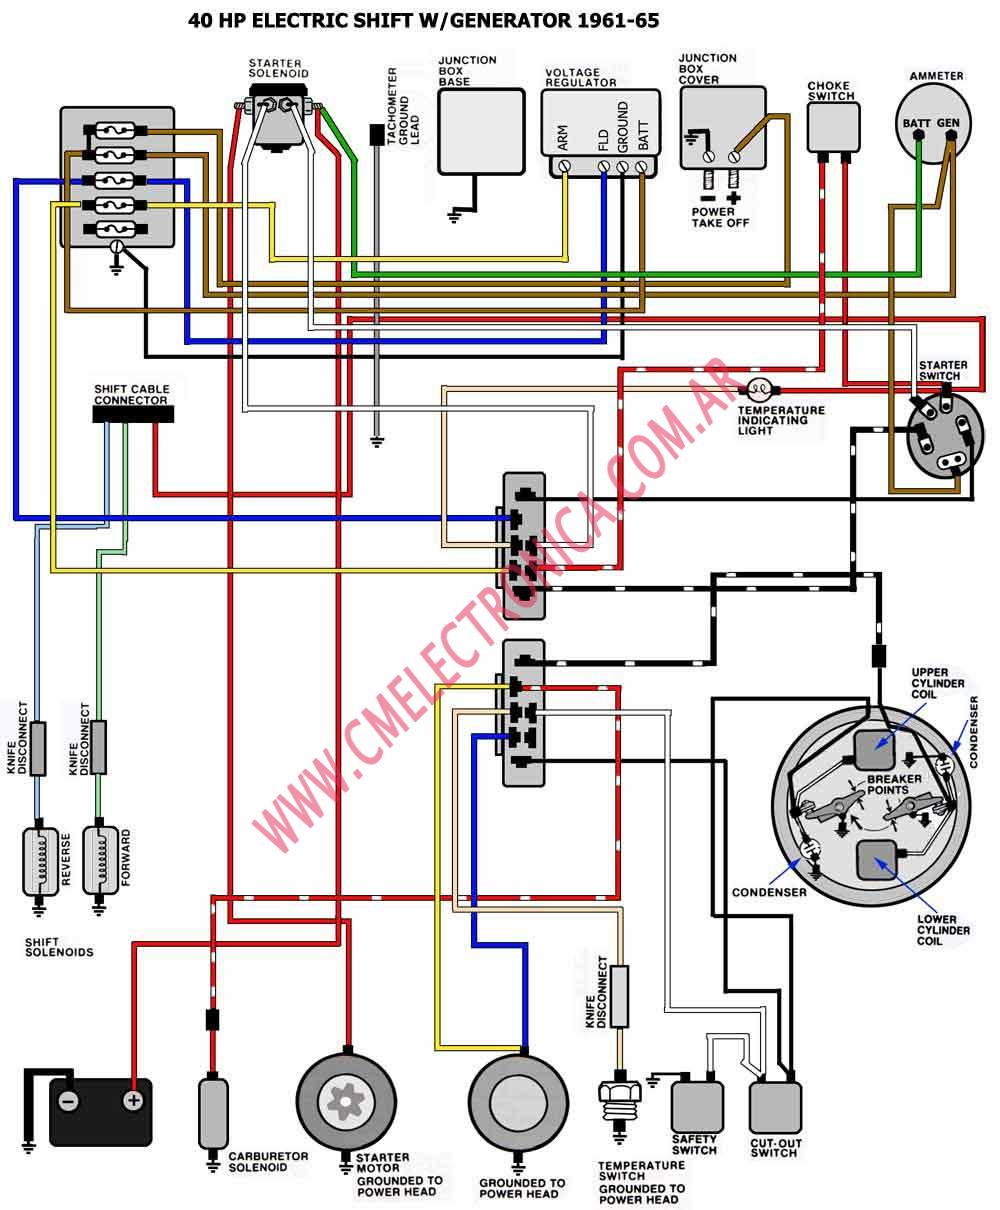 Diagrama Evinrude Johnson 61 66 40hp - Schema Wiring Diagram on evinrude e-tec outboard diagram, yamaha 90 hp outboard diagram, evinrude 48 spl diagram, evinrude engine parts diagram,